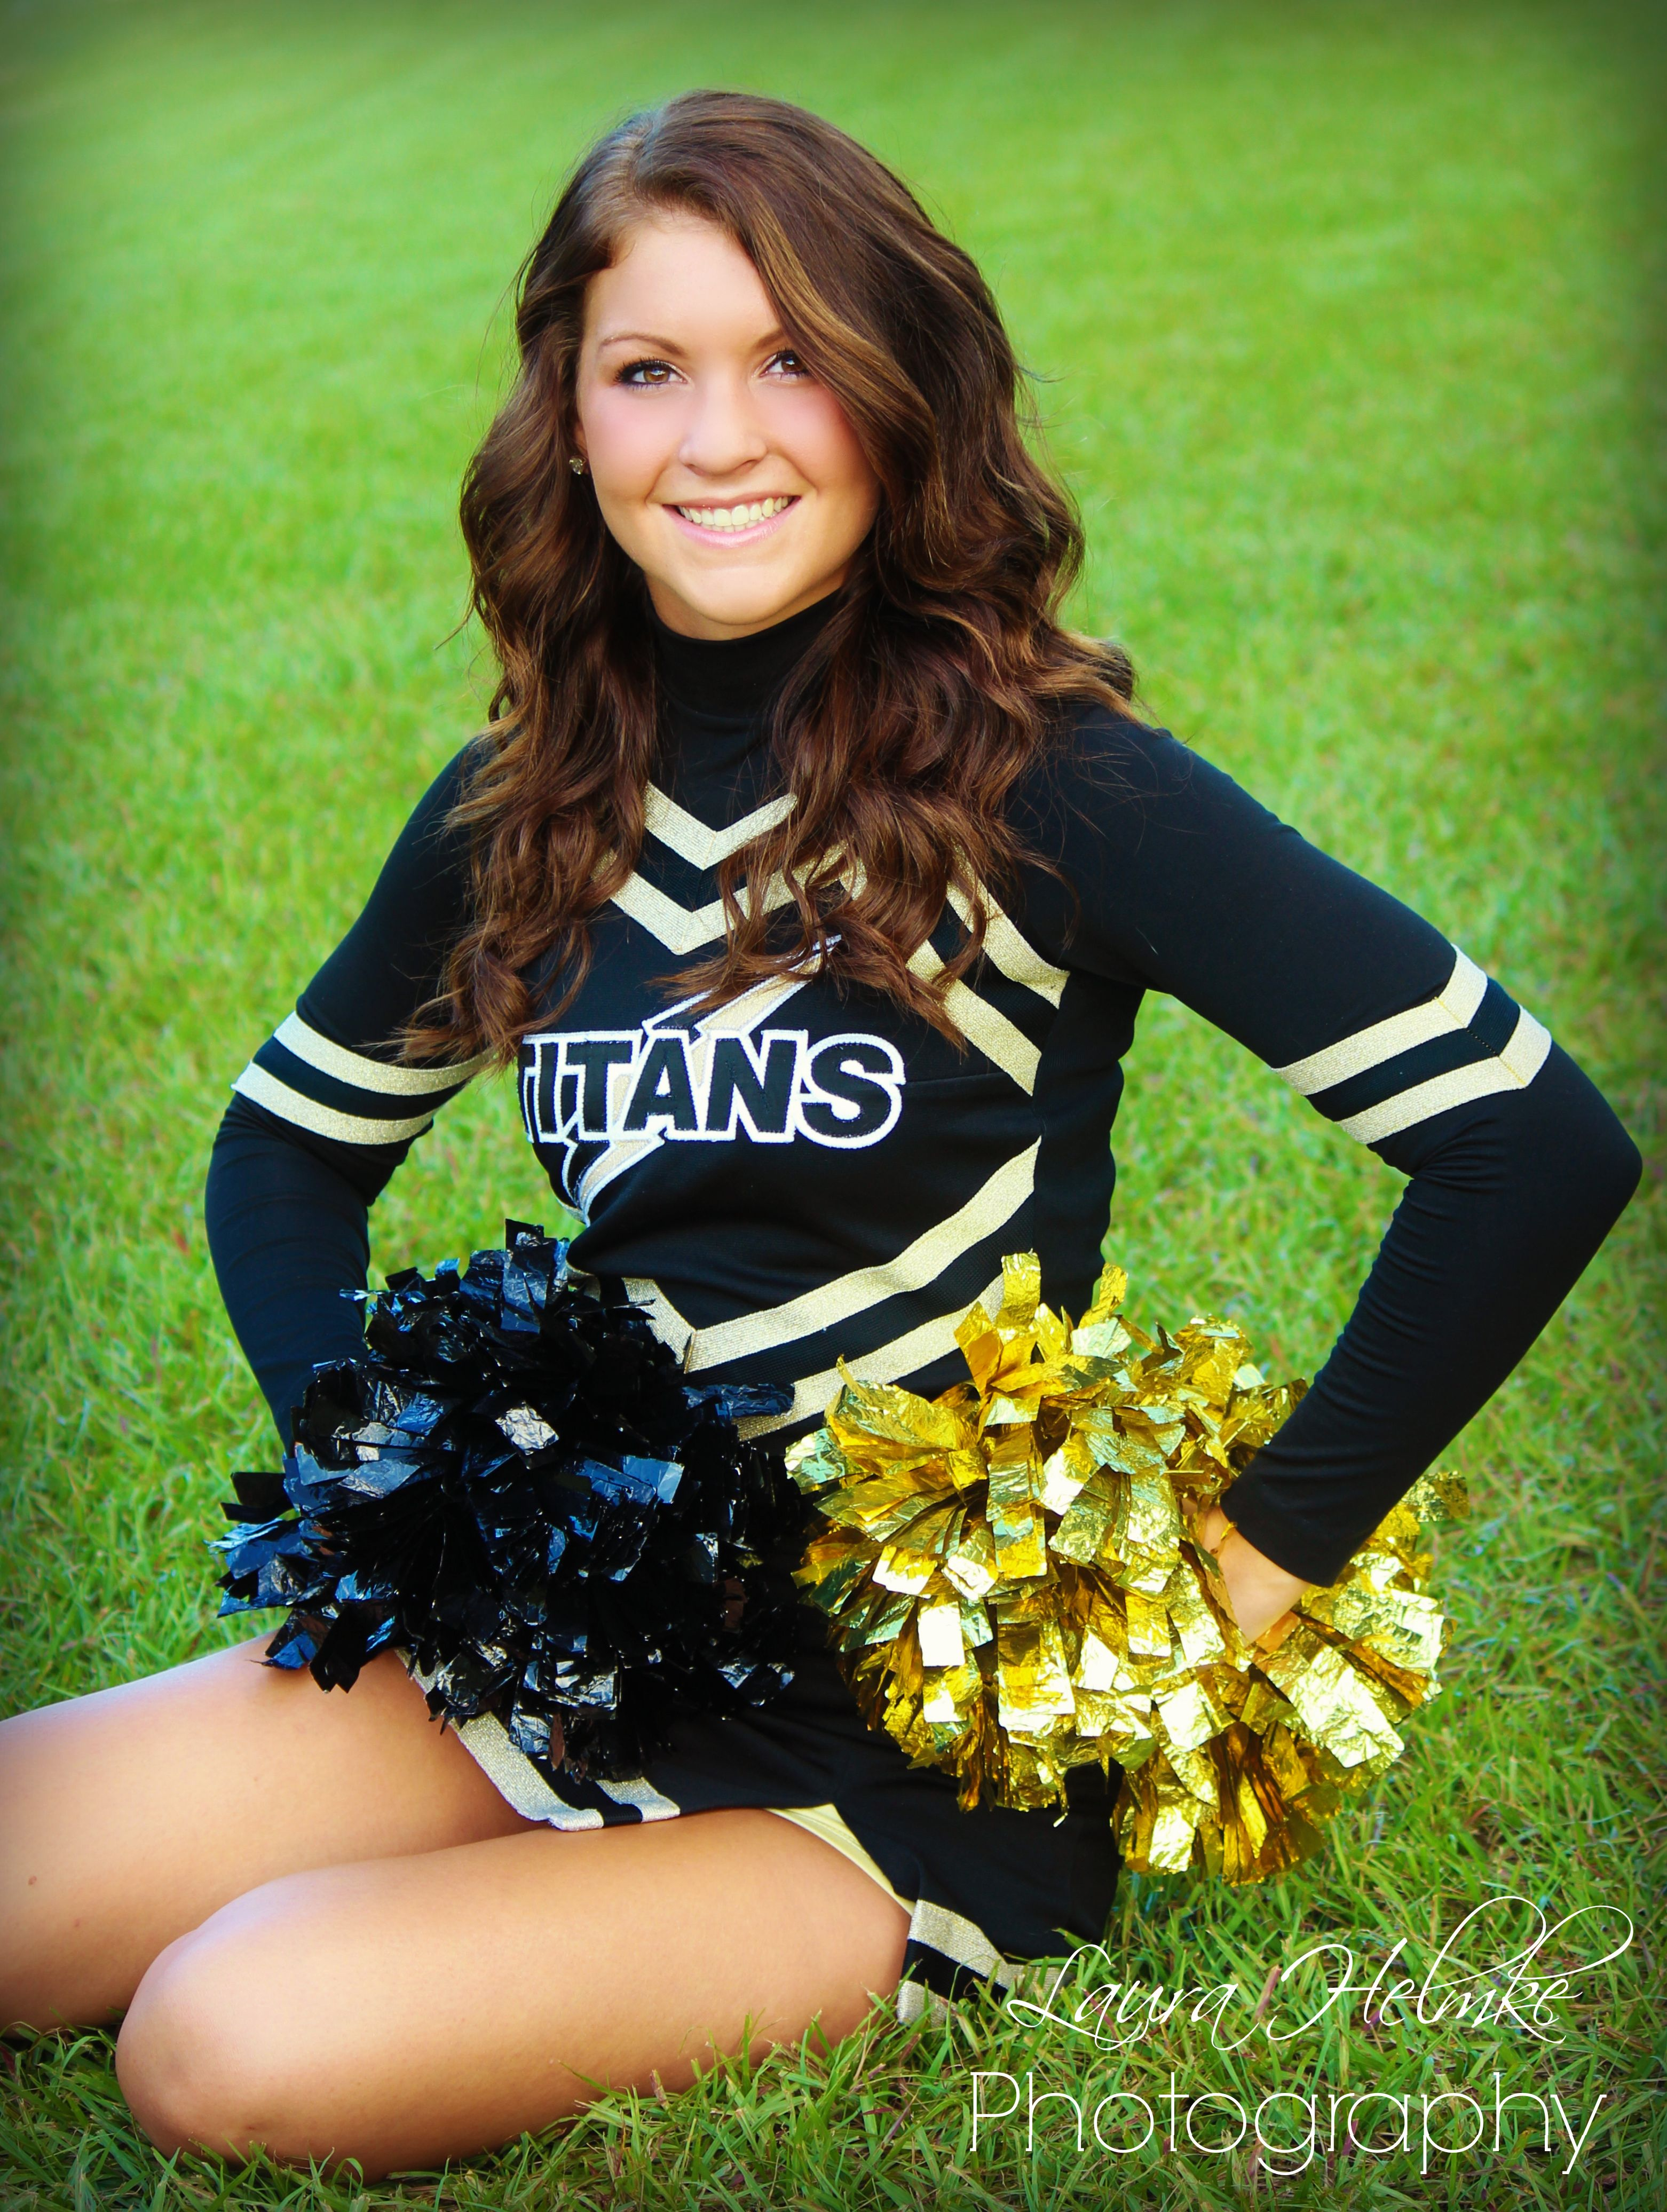 A cheerleader photography session 5